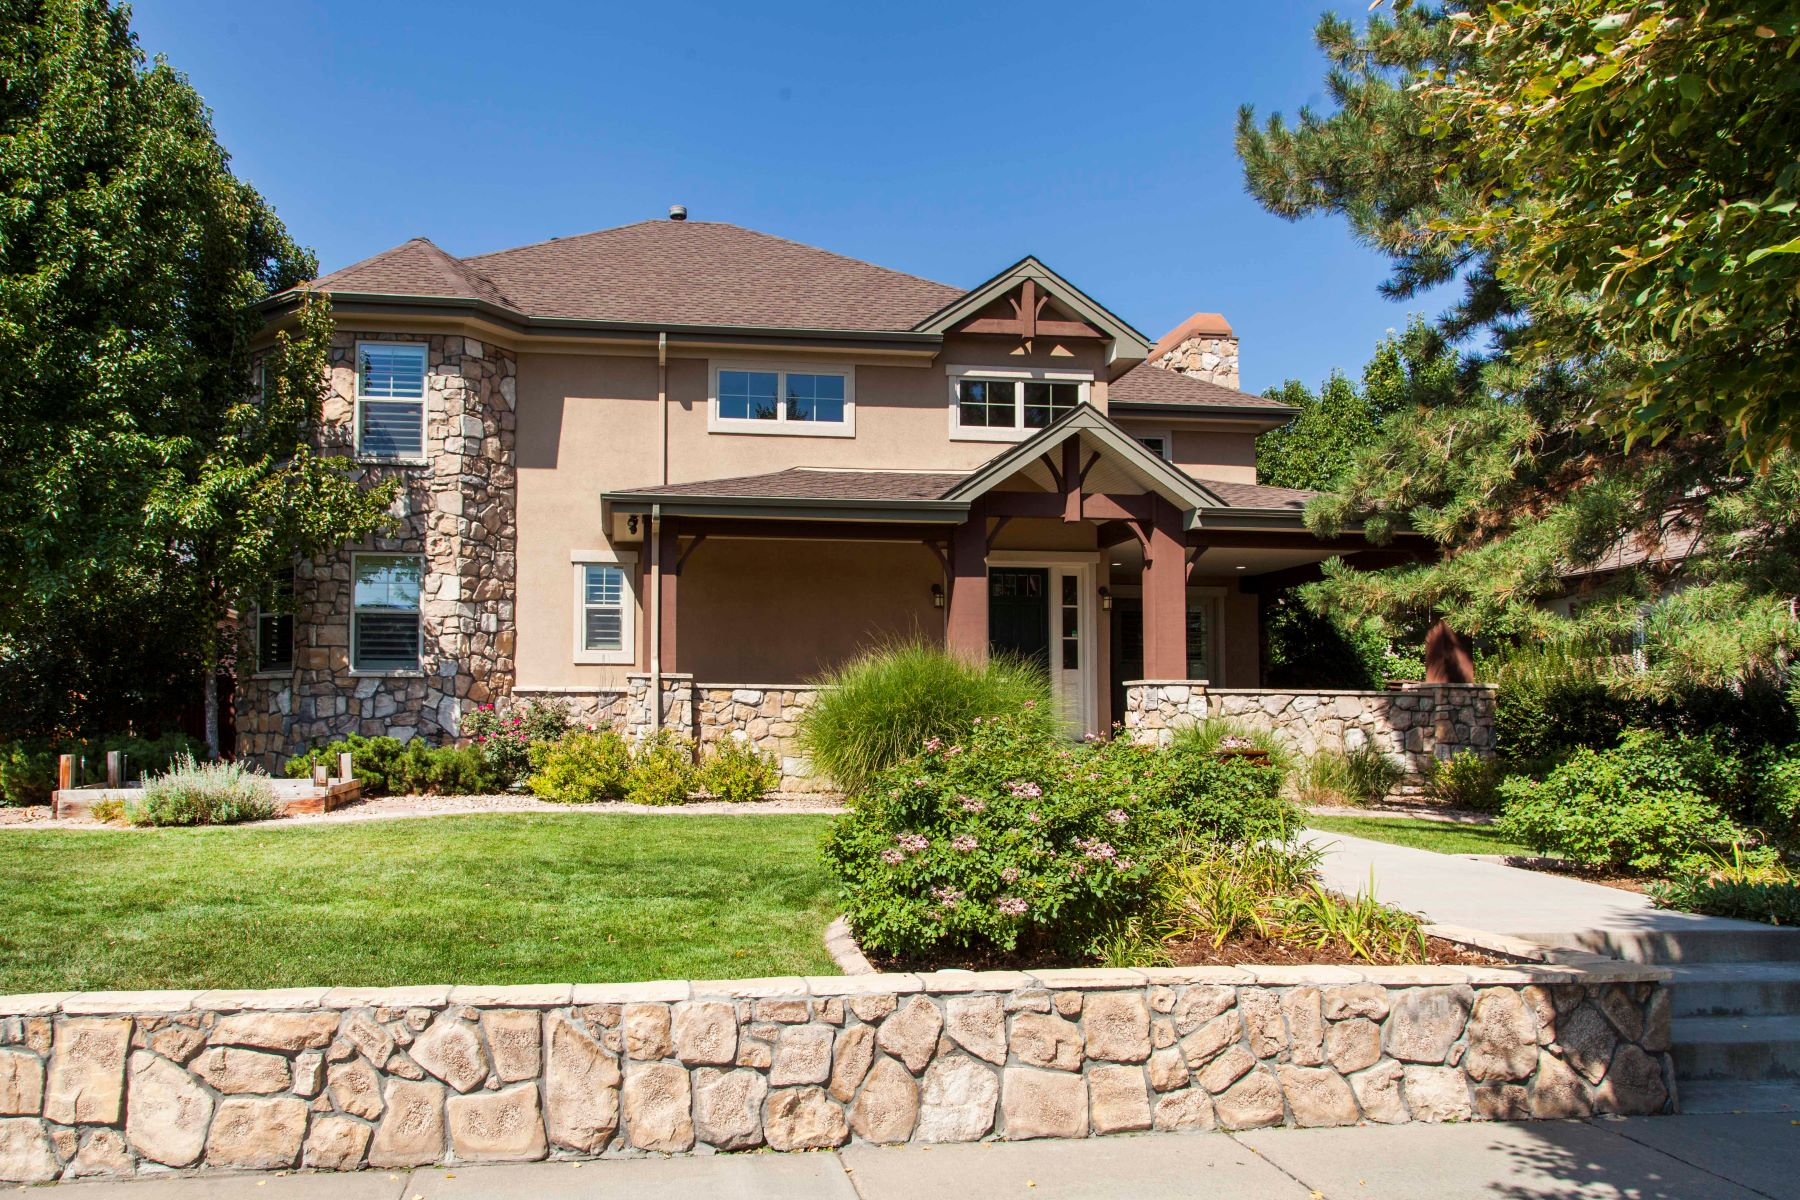 Single Family Home for Rent at Spectacular Custom Home On 6th Avenue Parkway Loaded With Upgrades! 8171 E 6th Ave Denver, Colorado 80230 United States